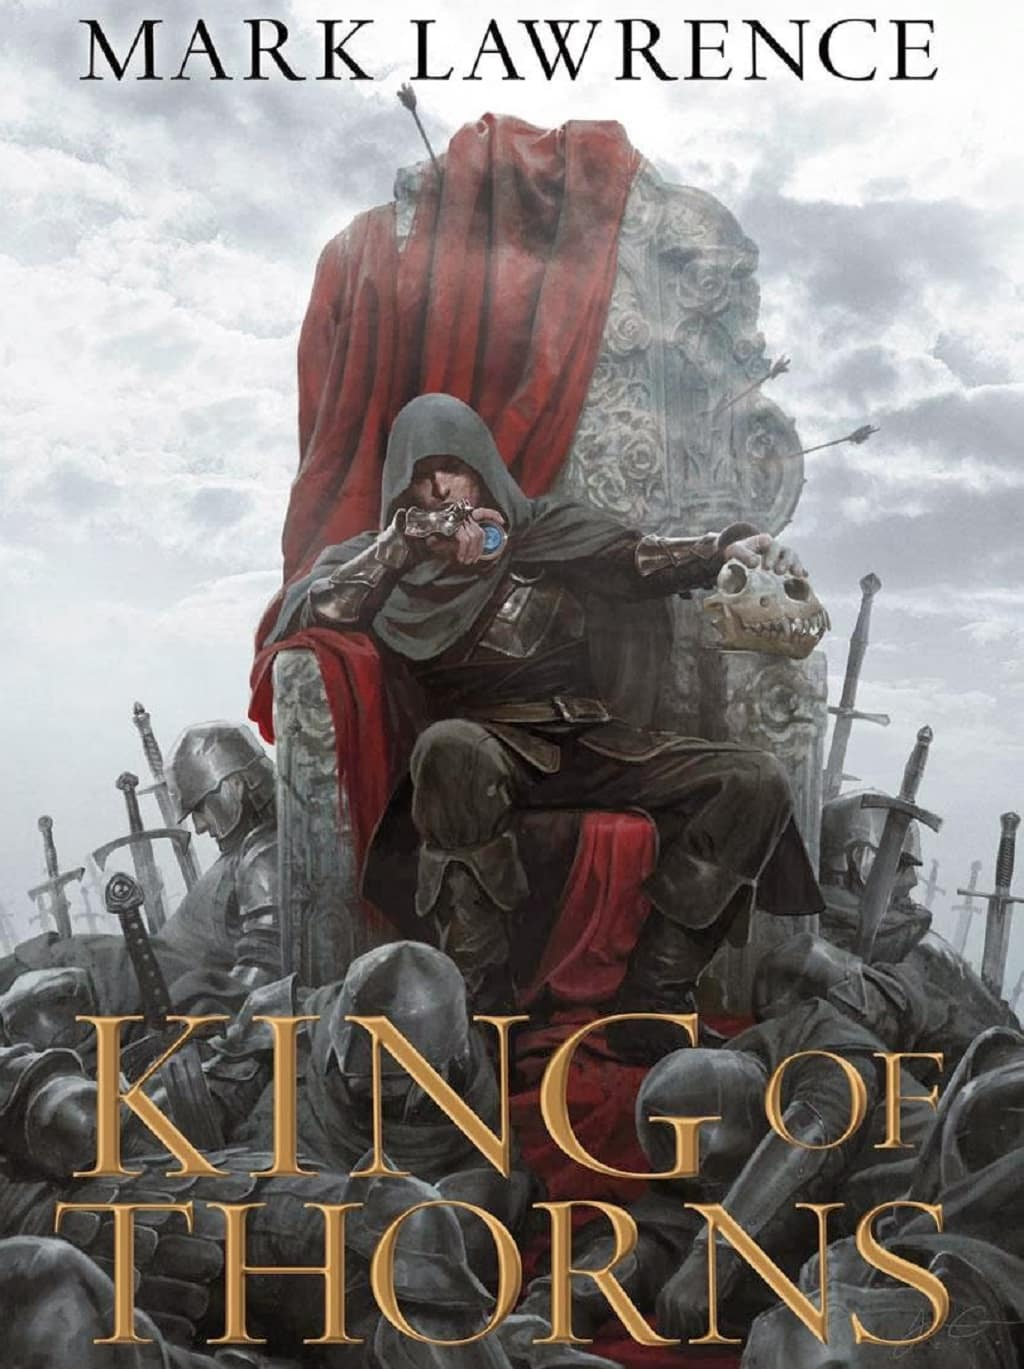 King of Thorns Audiobook Free Download and Listen